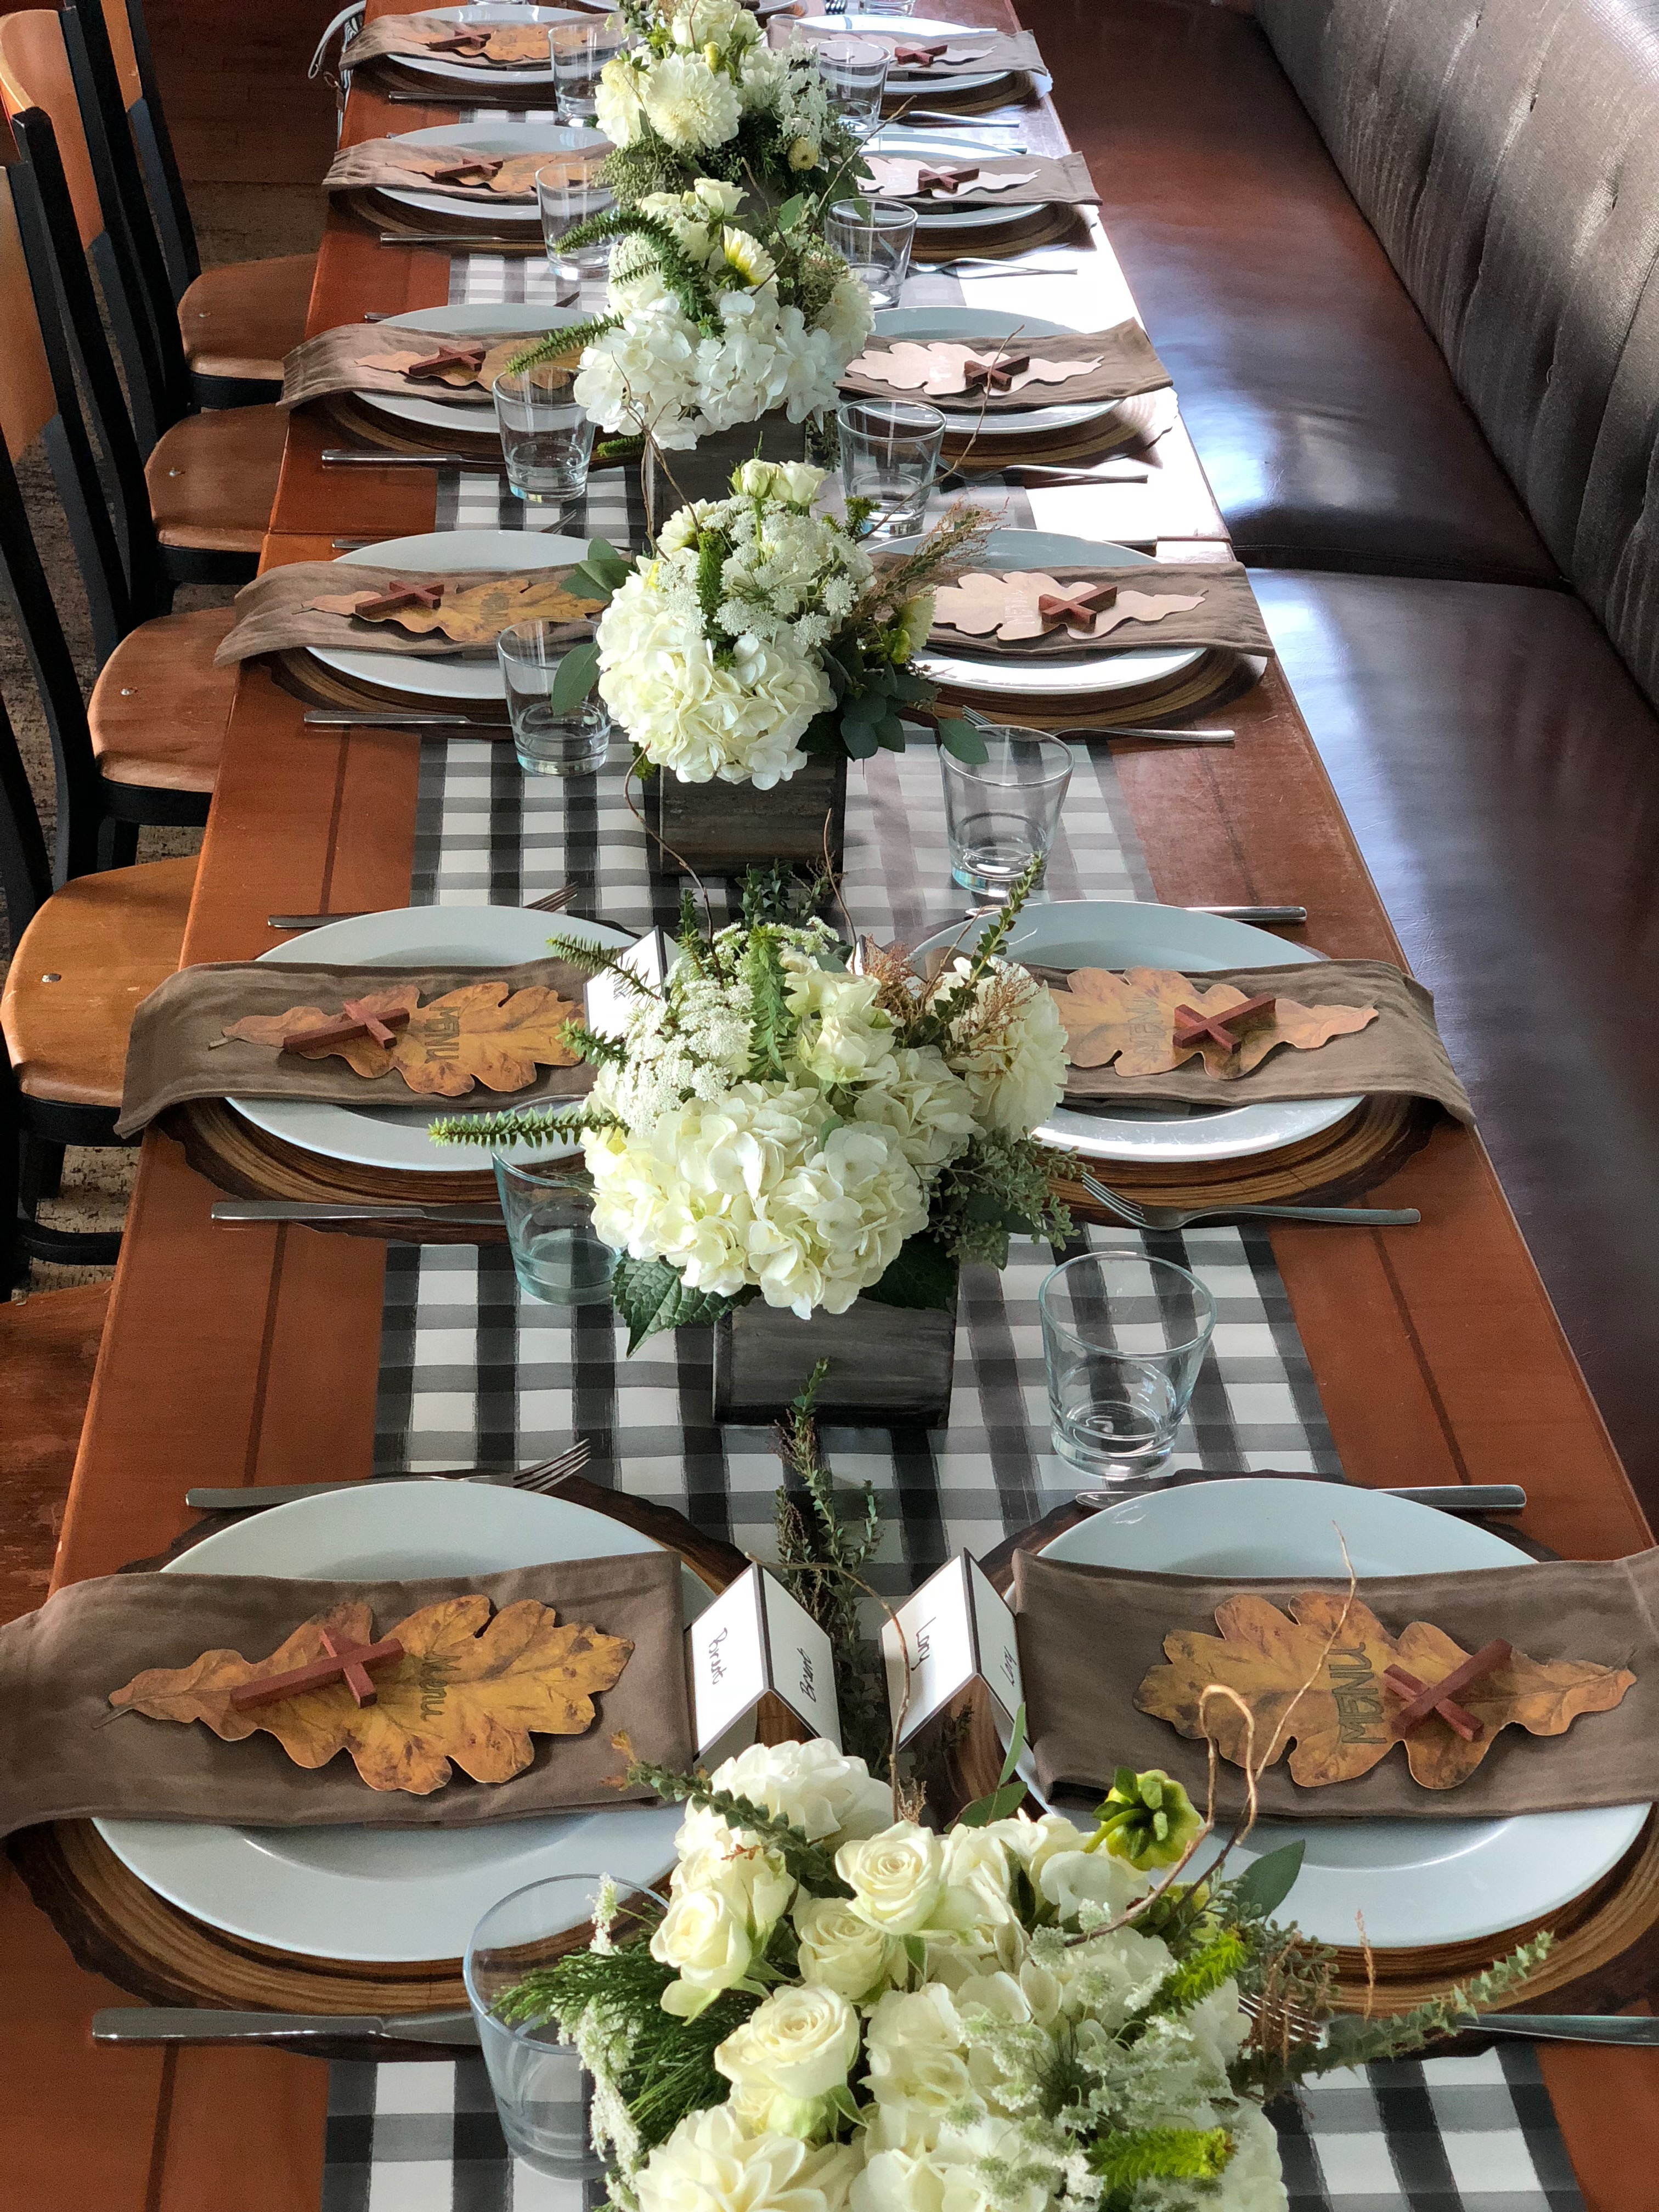 Restaurant Entertaining: How to Personalize Your Event